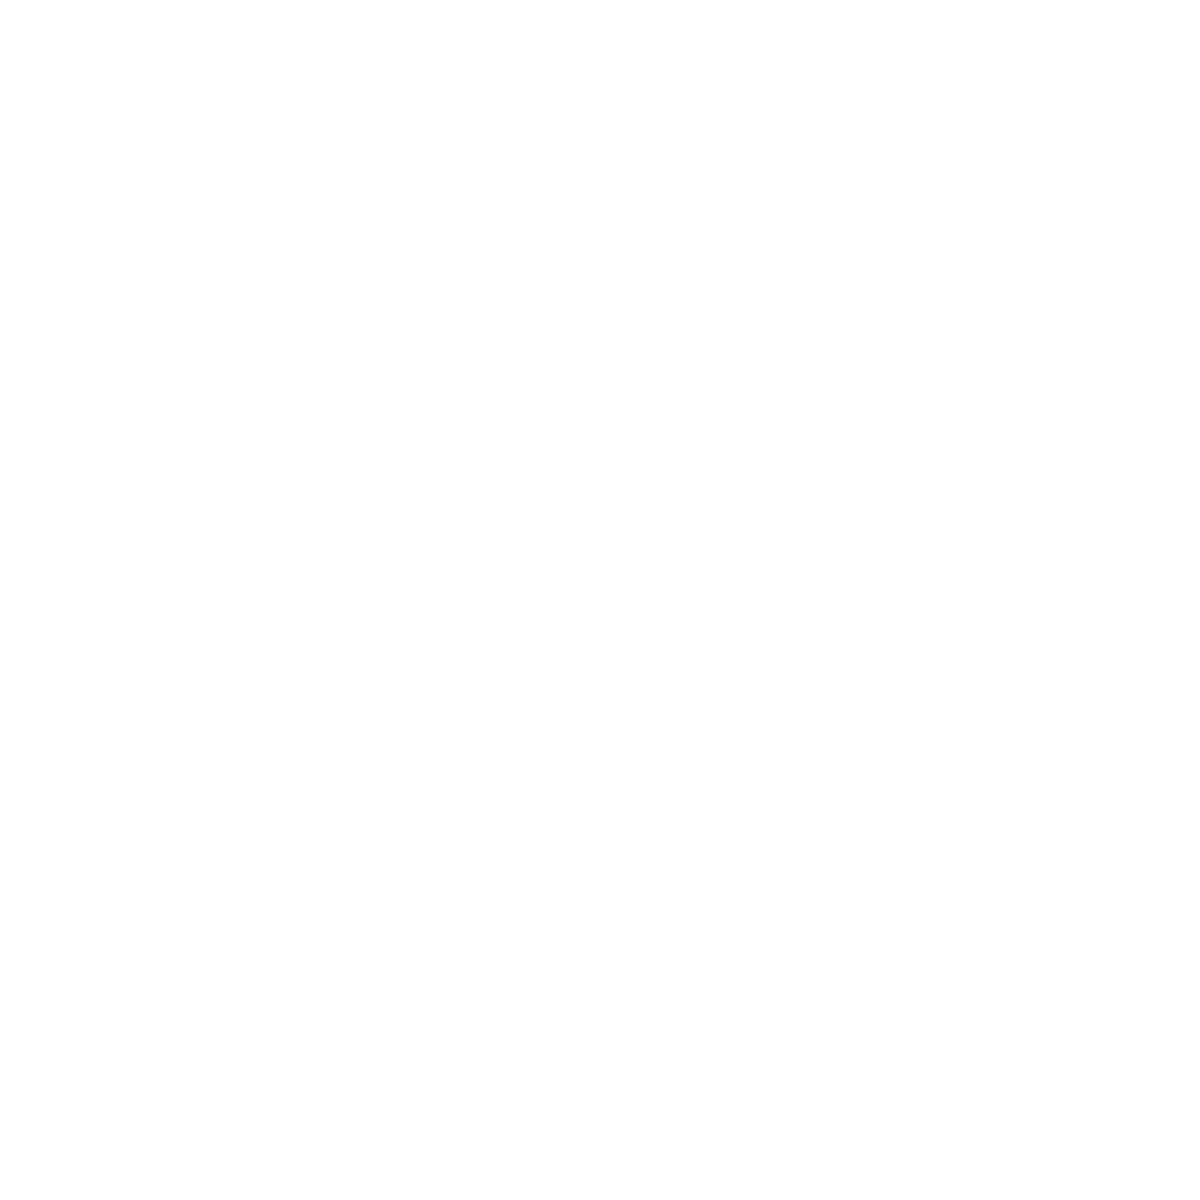 Mill City Team